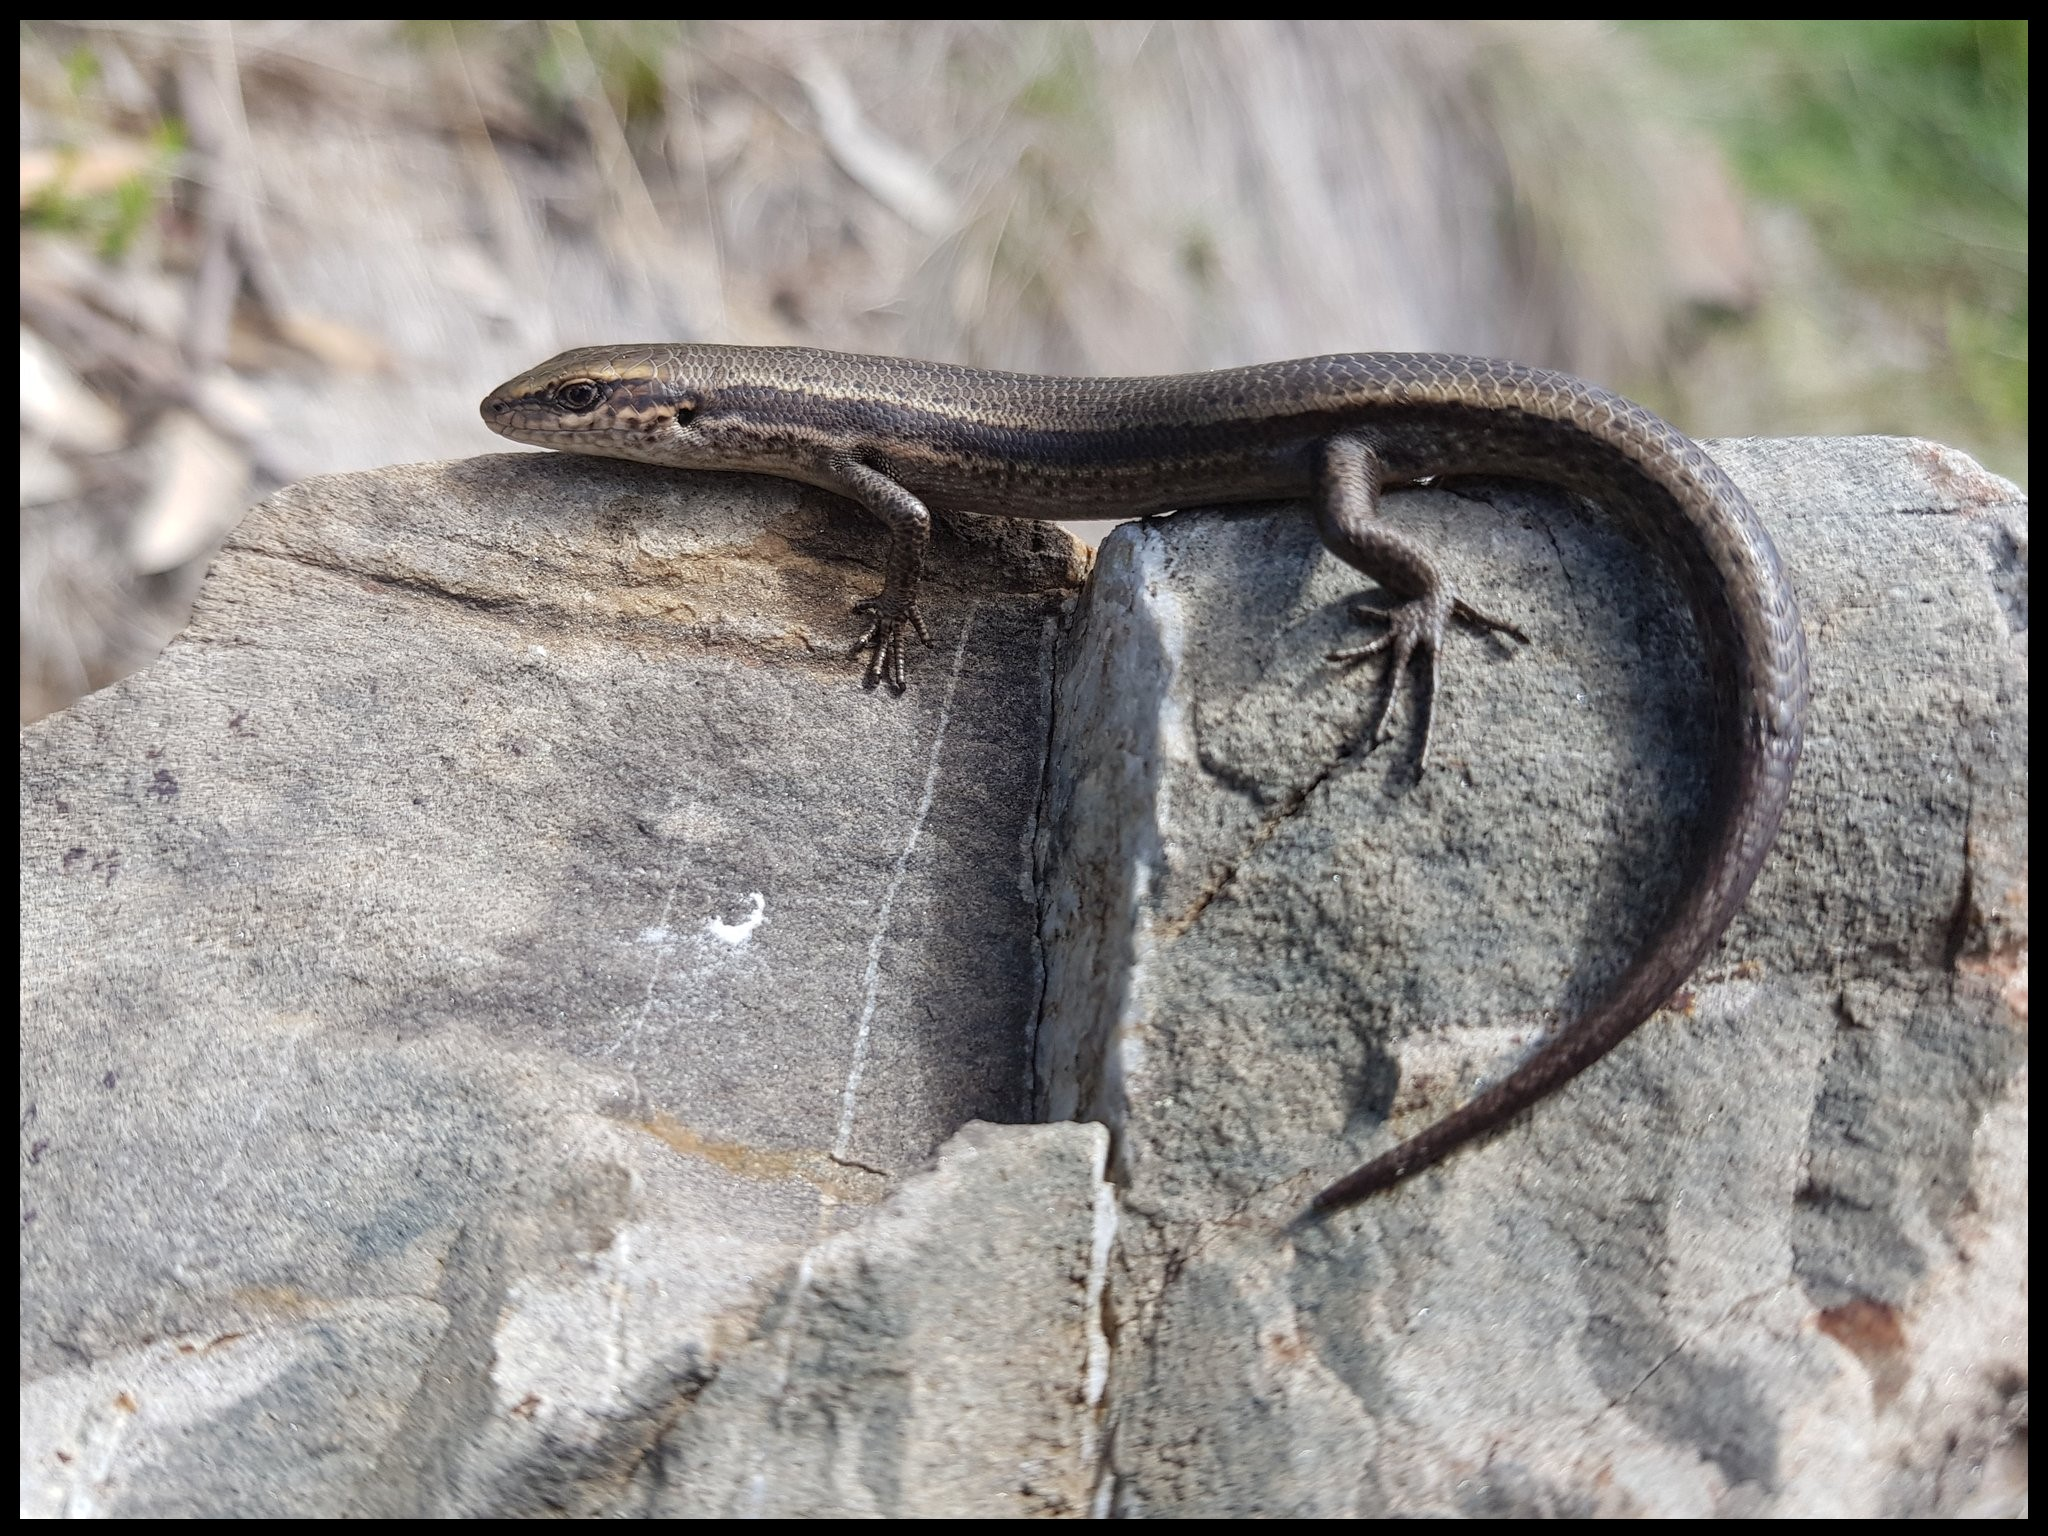 A Southern Grass Skink,  Pseudemoia entrecasteauxii , one of the species we study as a model for placental evolution.